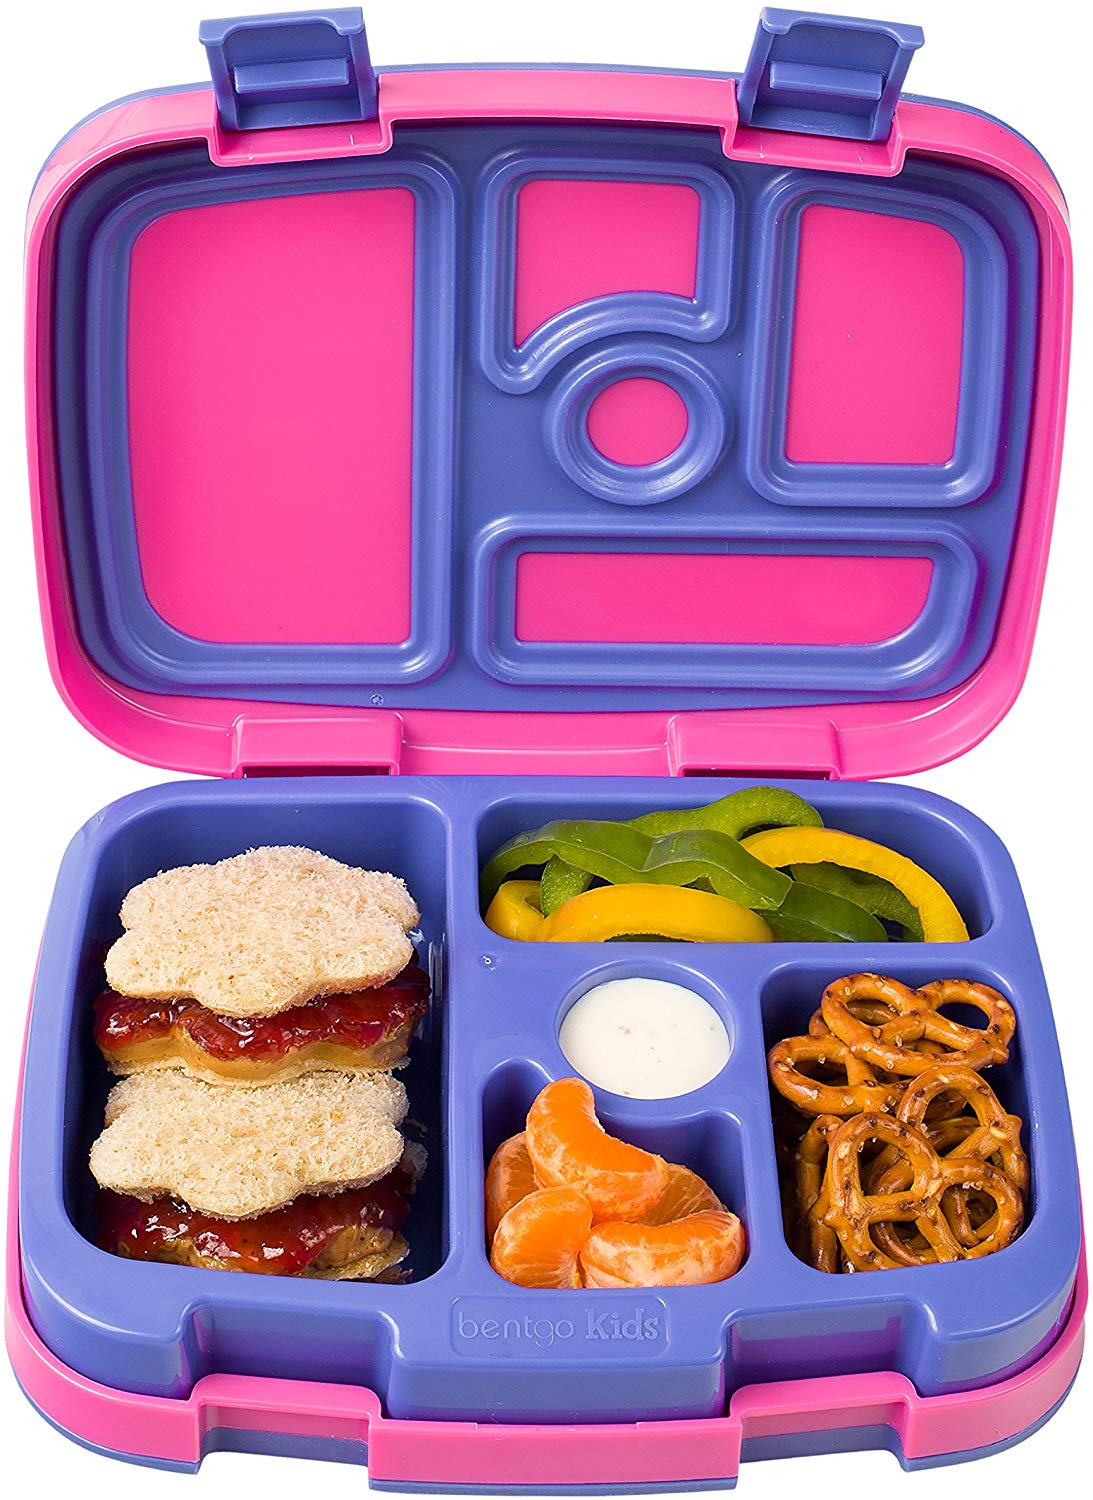 Bentgo Kids Brights Leak-Proof, 5 Compartment Bento-Style Kids Lunch Box